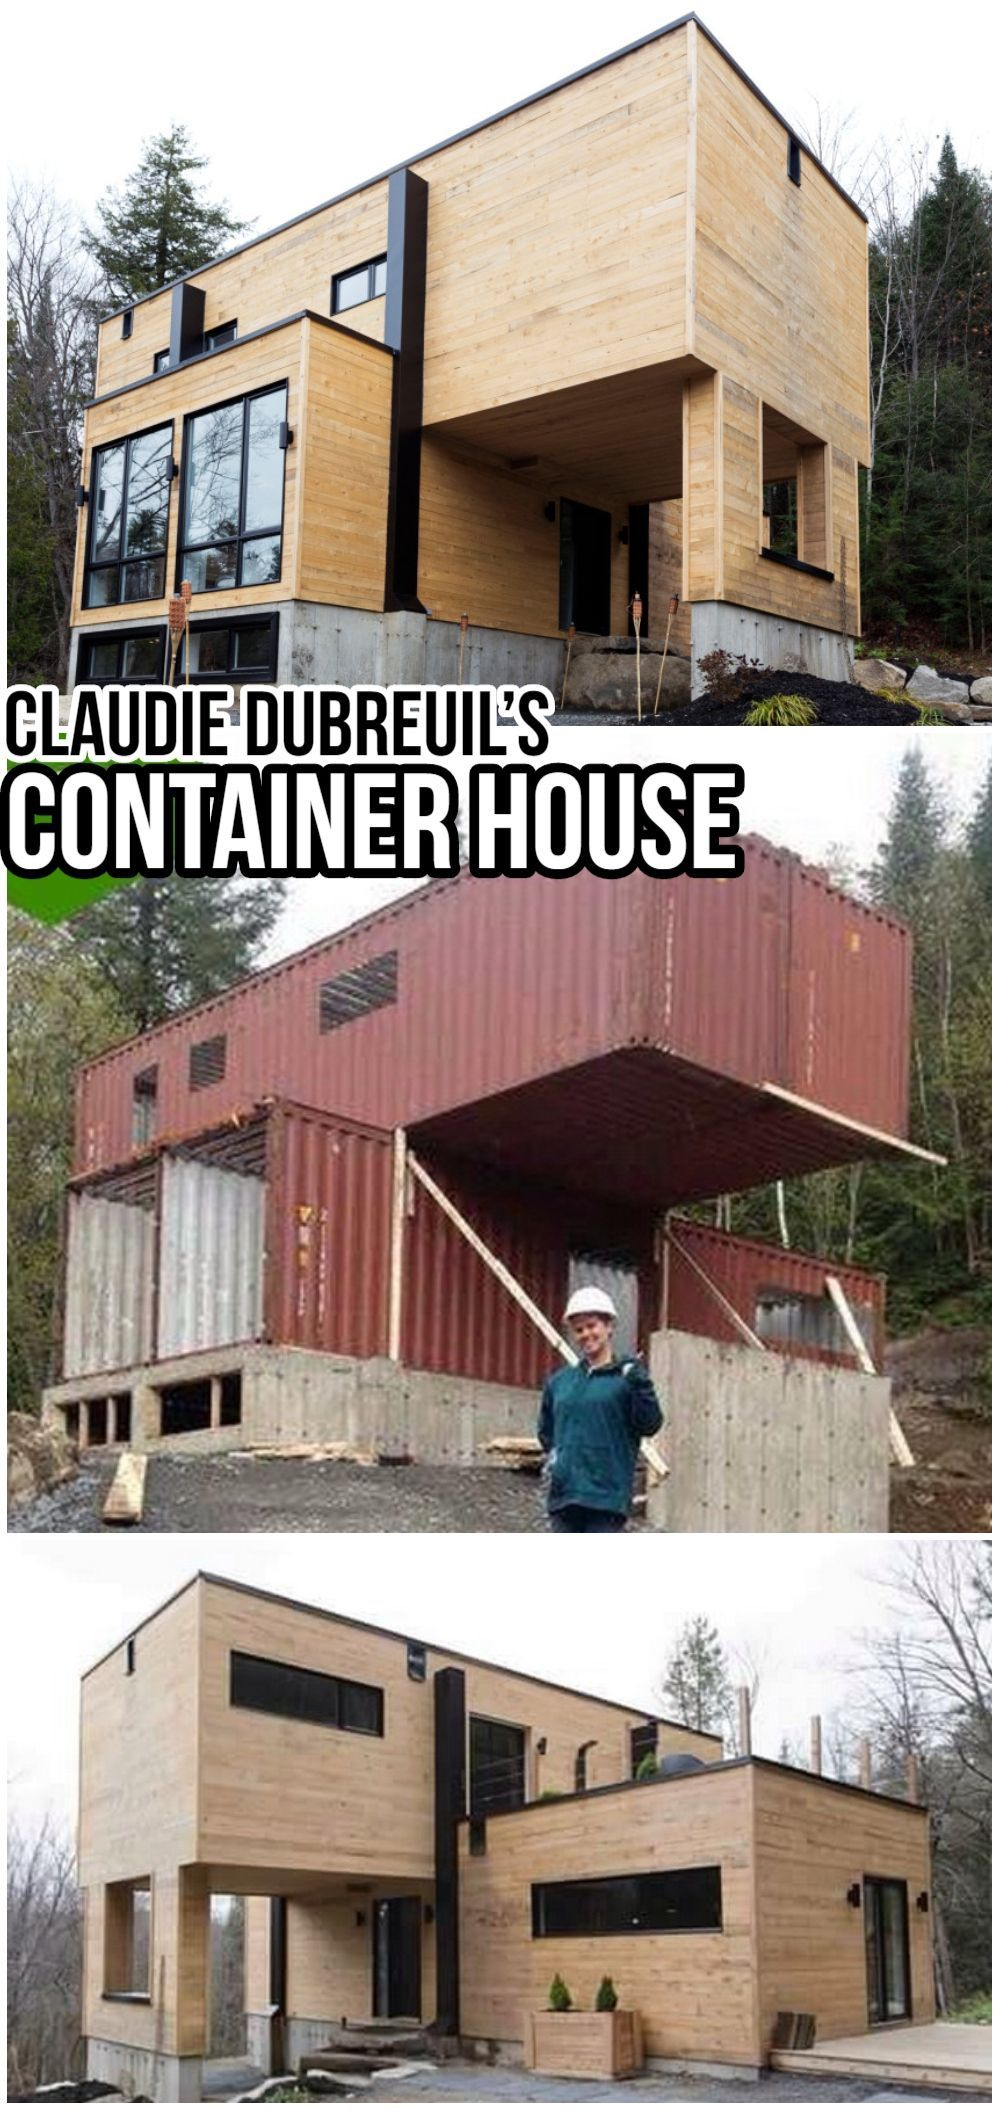 Claudie Dubreuil's Shipping Container Home - Canada - Living in a Container